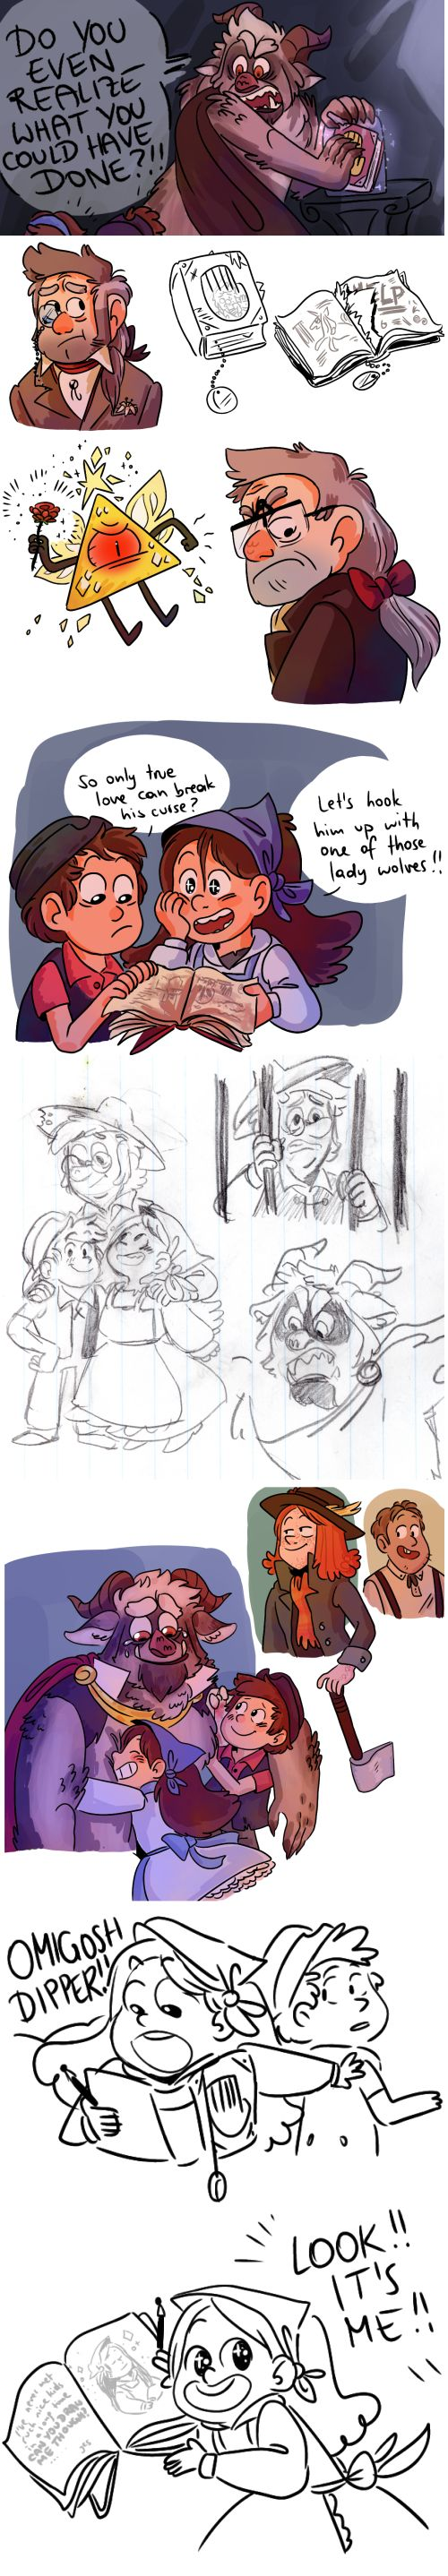 Gravity Falls Beauty and the Beast AU - art by cirilee.tumblr.com